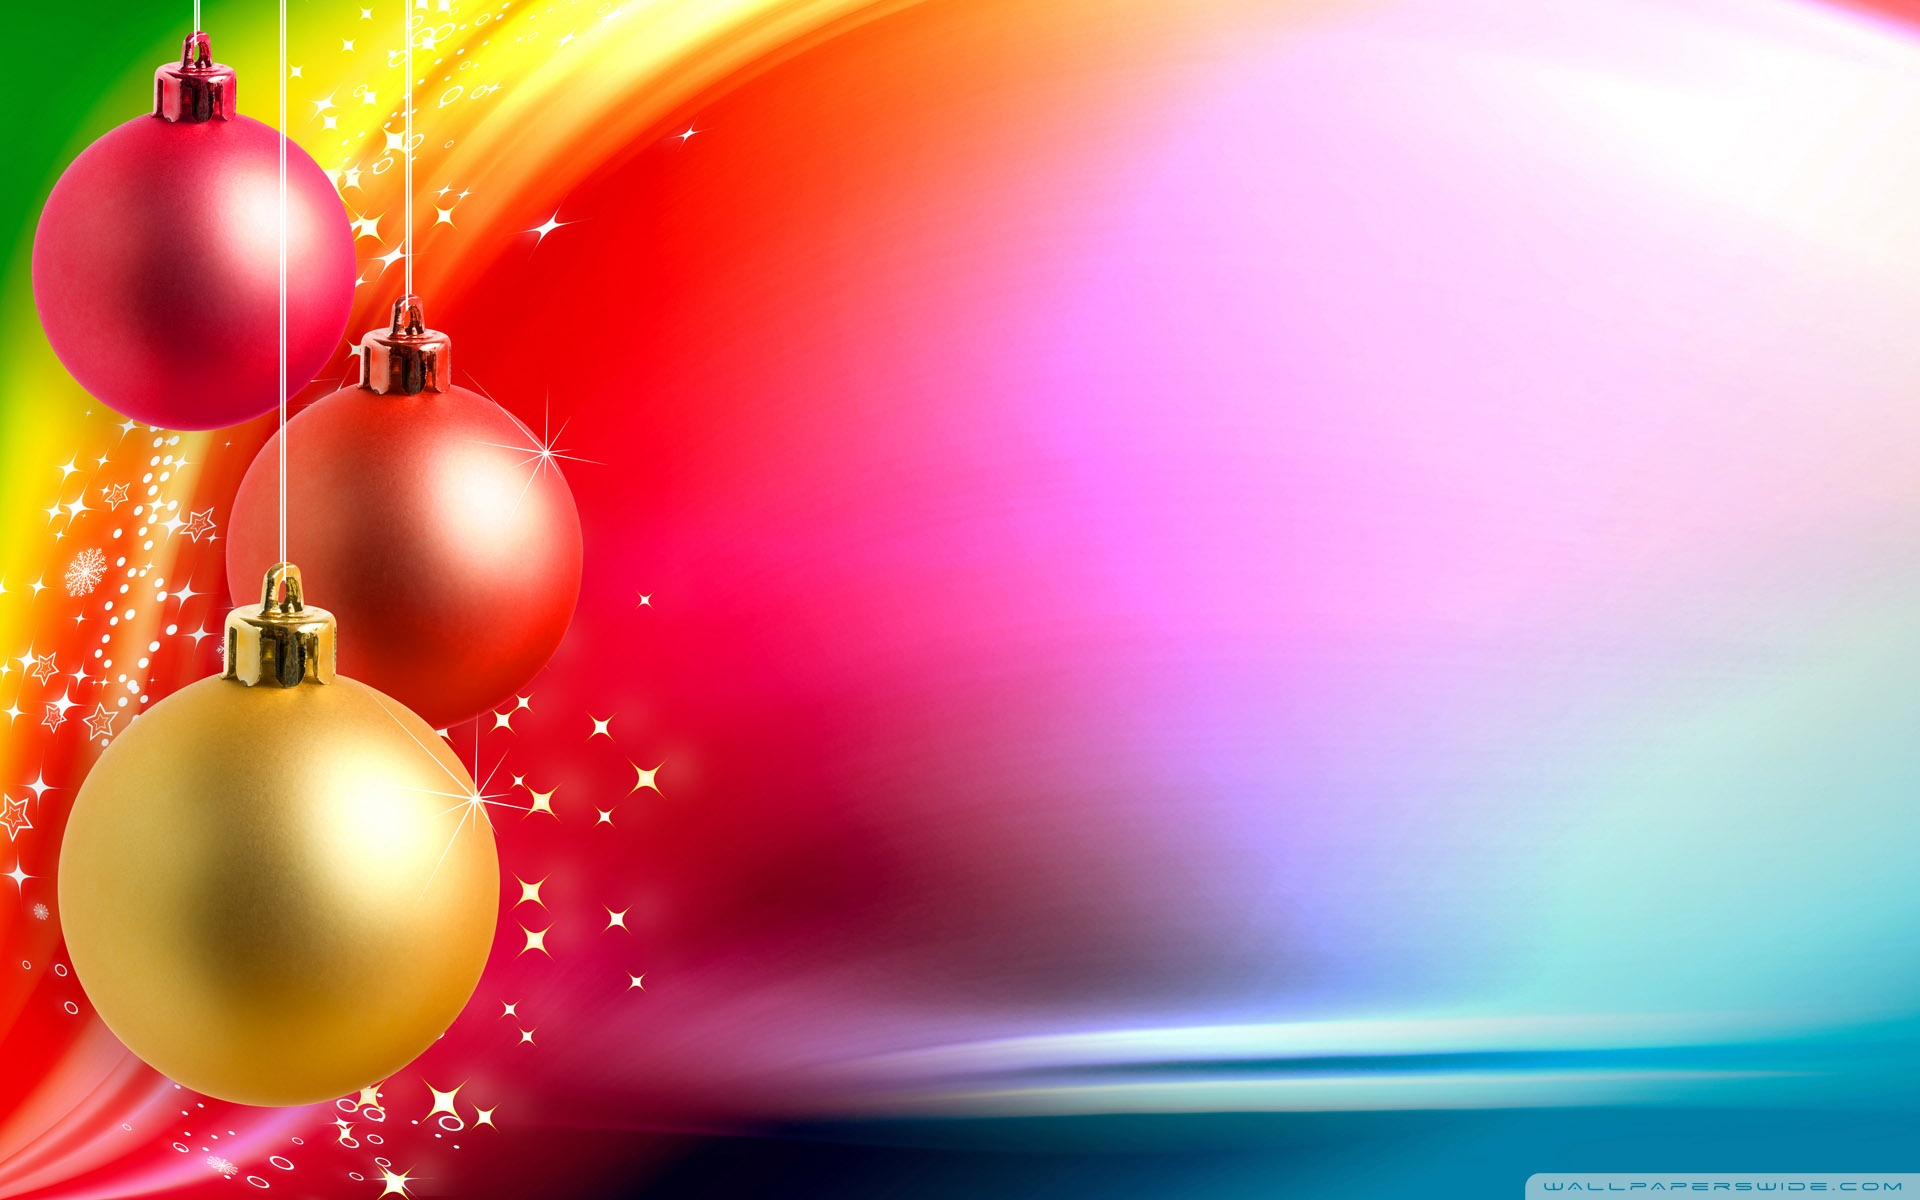 birthday background images hd ; colorful_christmas_background-wallpaper-1920x1200